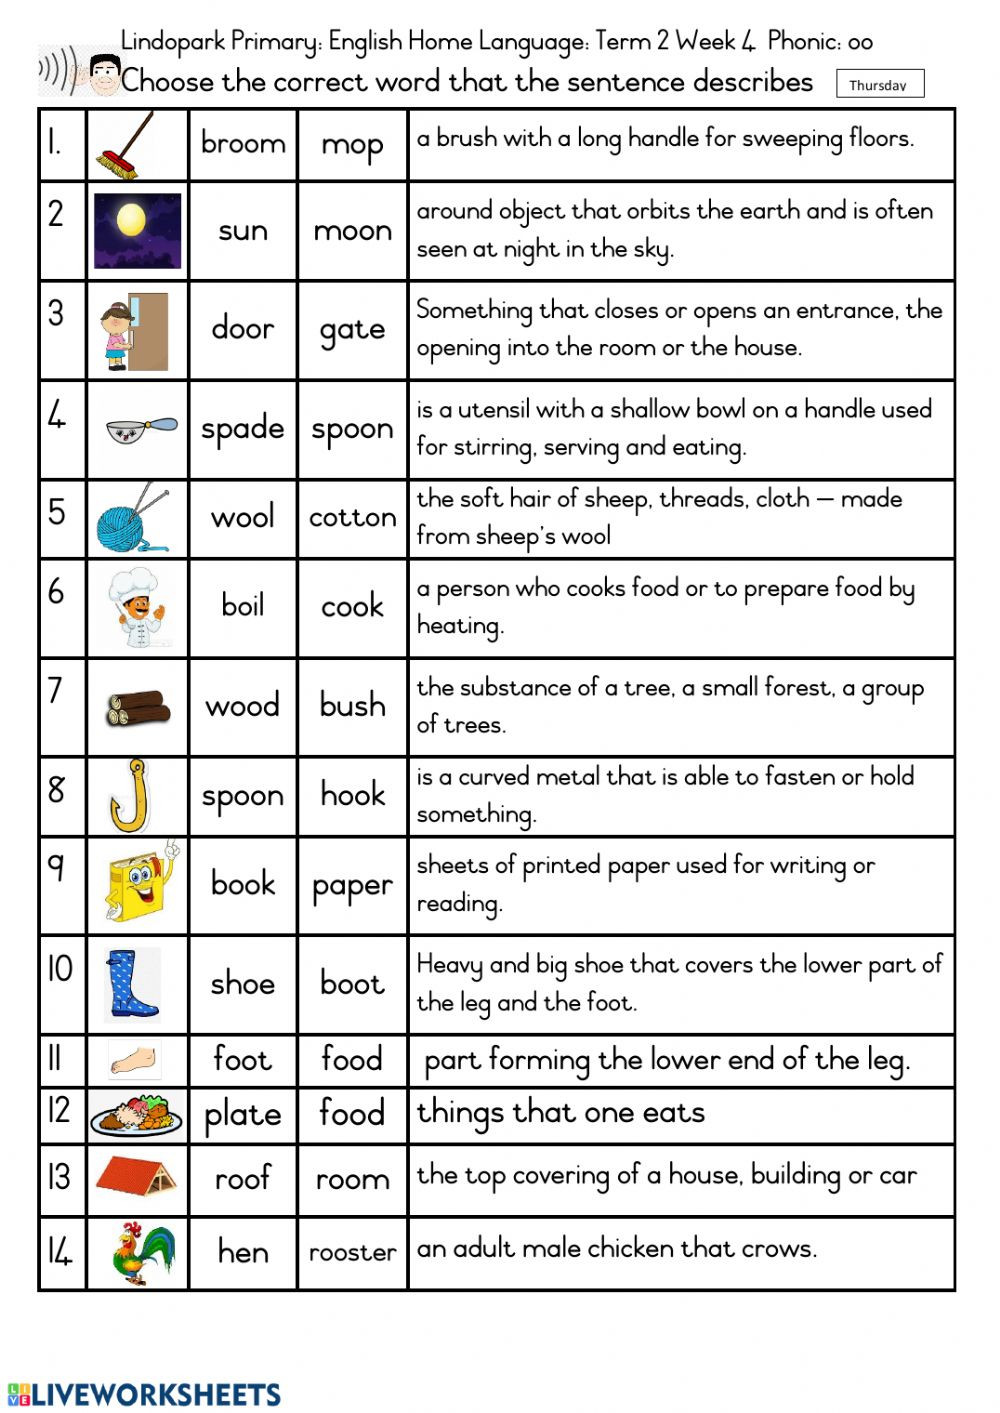 Phonics Worksheets Grade 3 Grade 3 English Term 2 Week 4 Worksheet 4 Thursday